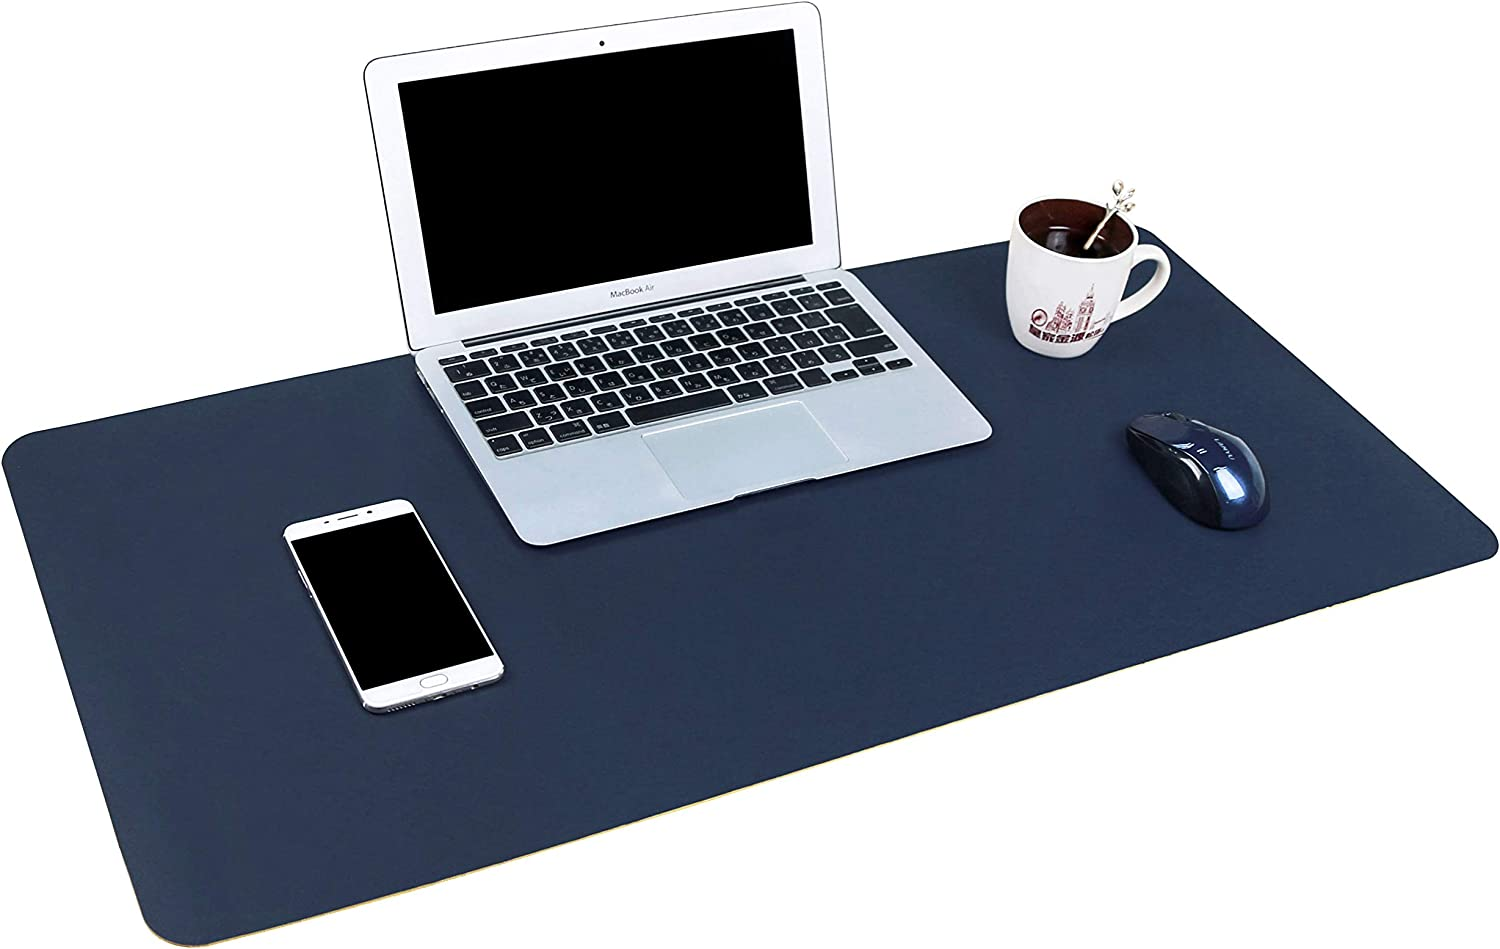 """YSAGi Multifunctional Office Desk Pad, 31.5"""" x 15.7"""" Ultra Thin Waterproof PU Leather Mouse Pad, Dual Use Desk Writing Mat for Office/Home (31.5"""" x 15.7"""", Blue)"""